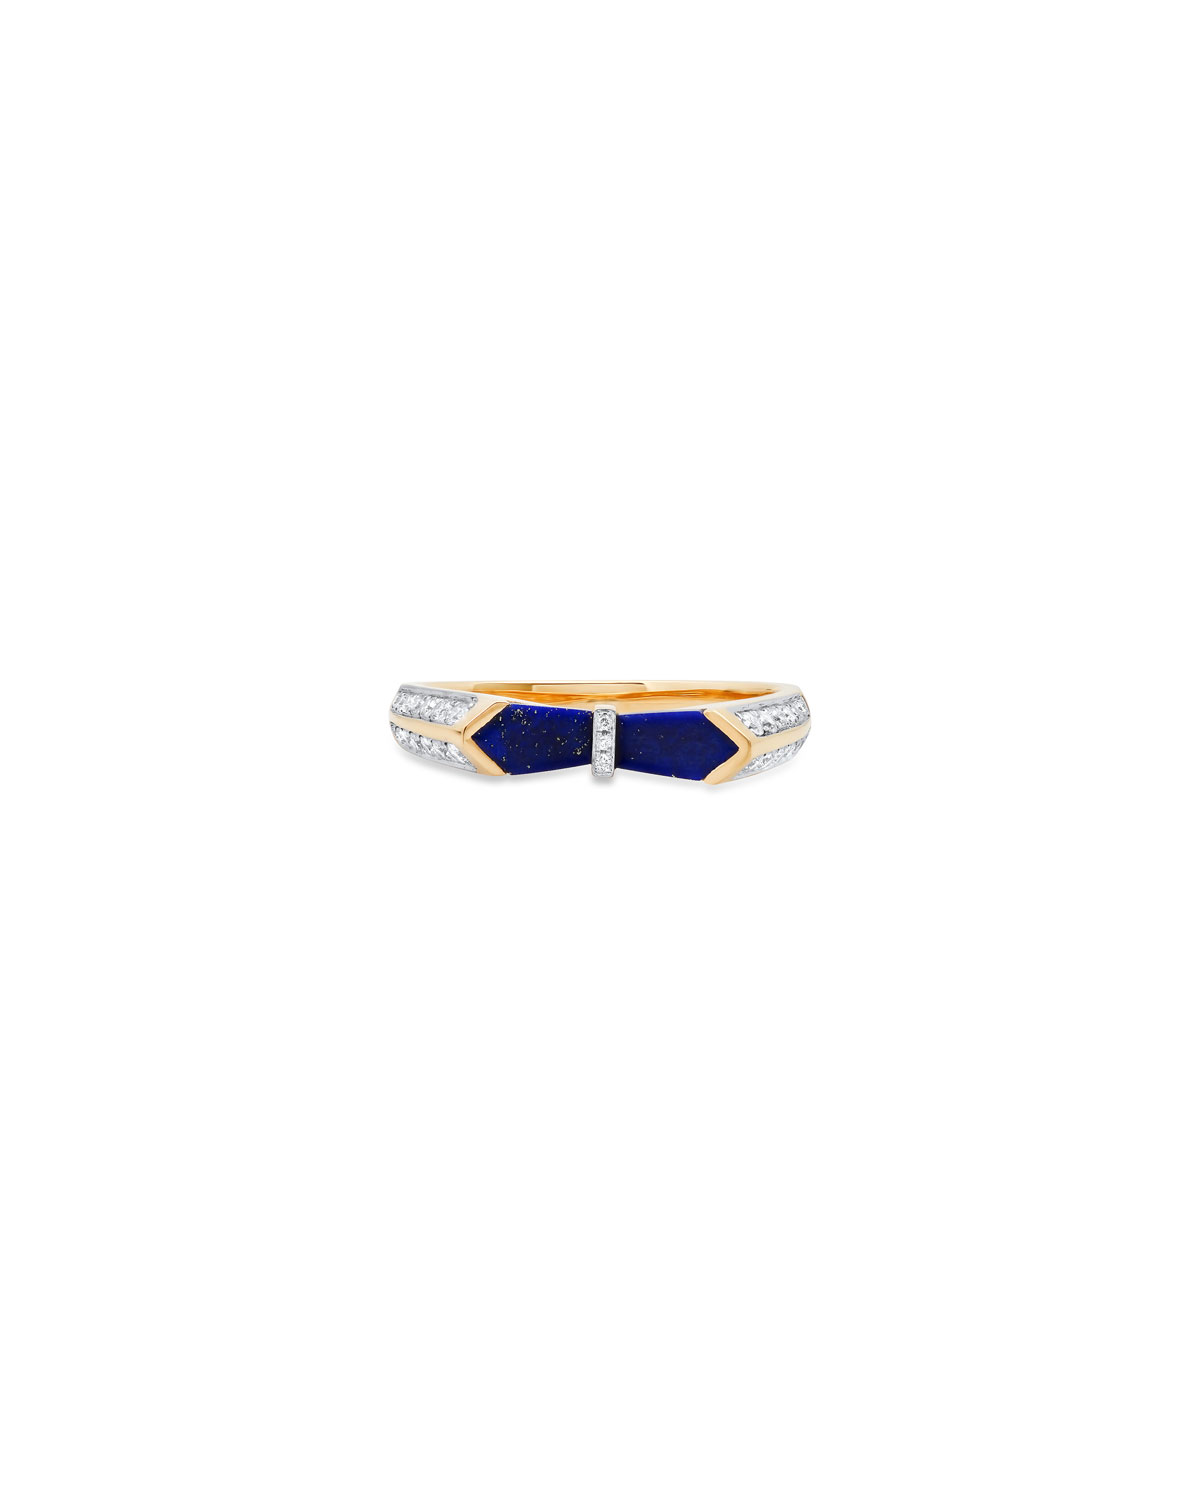 18k Yellow Gold Ring in Lapis and Diamonds